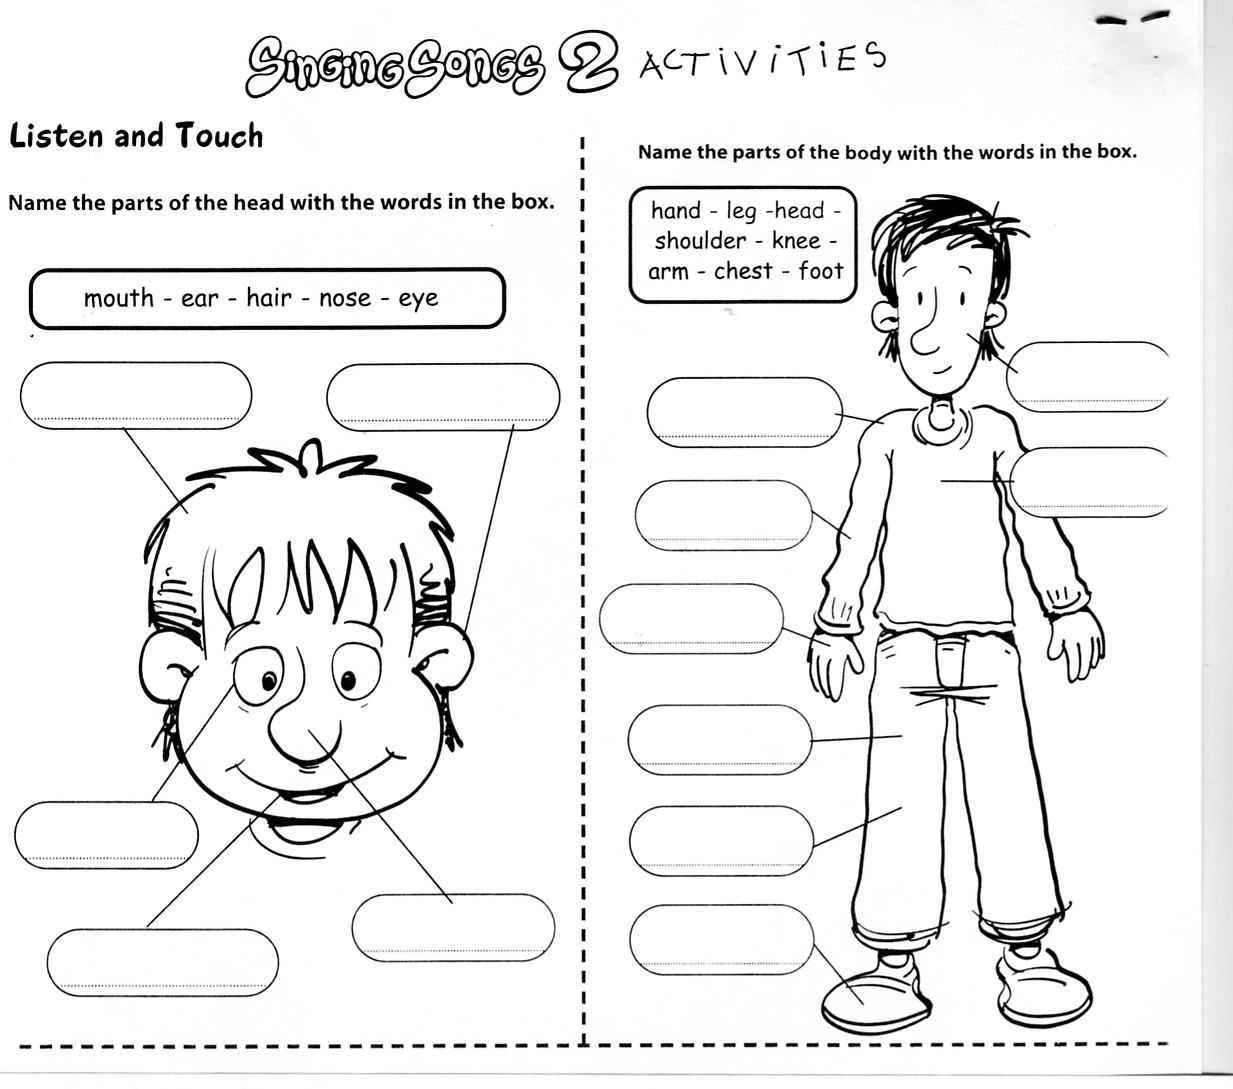 Worksheets Esol Worksheets this esol worksheet is intended to familiarize the children with parts of their body